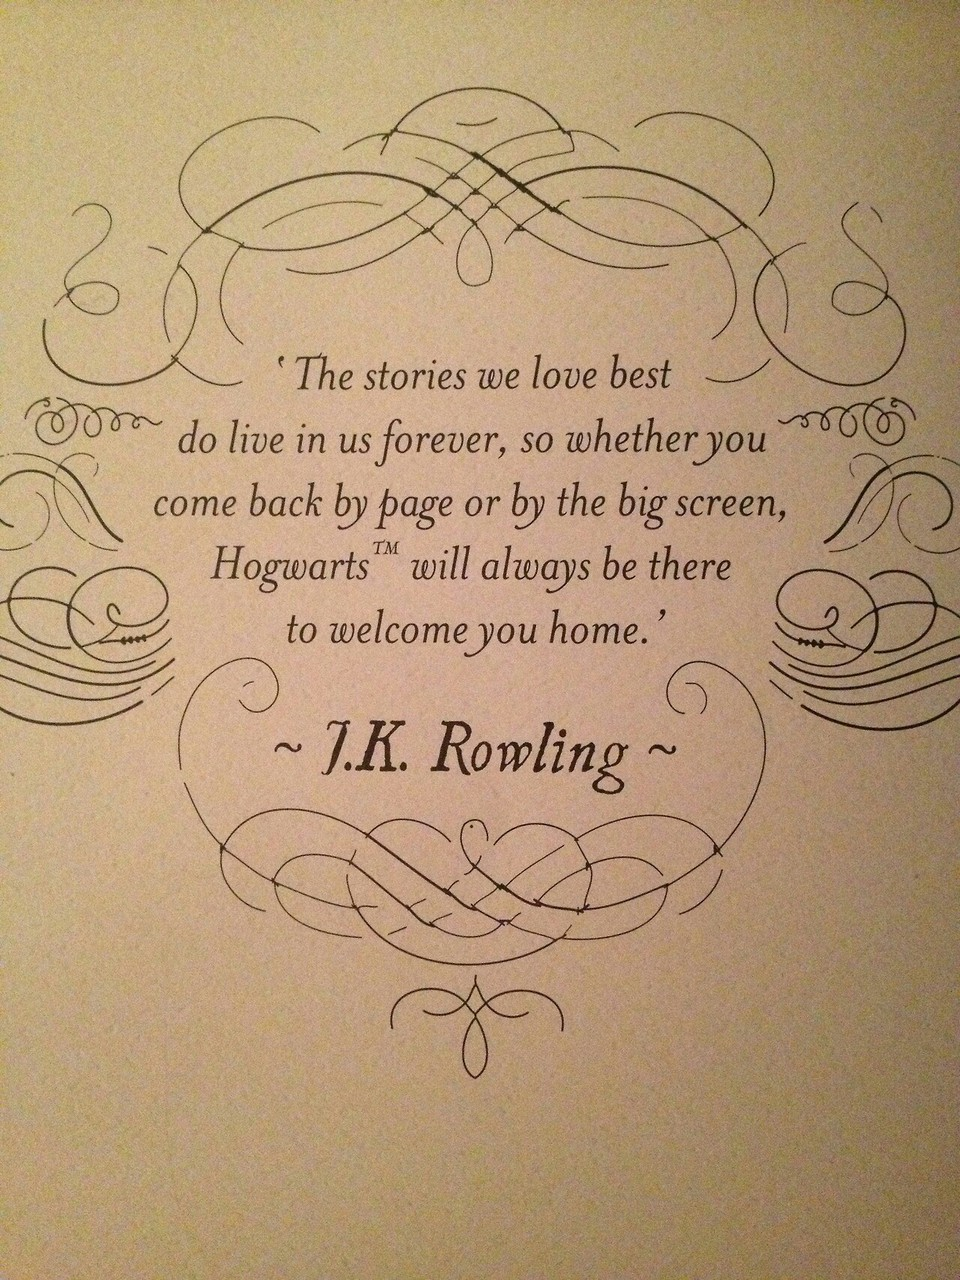 harry potter and quote image